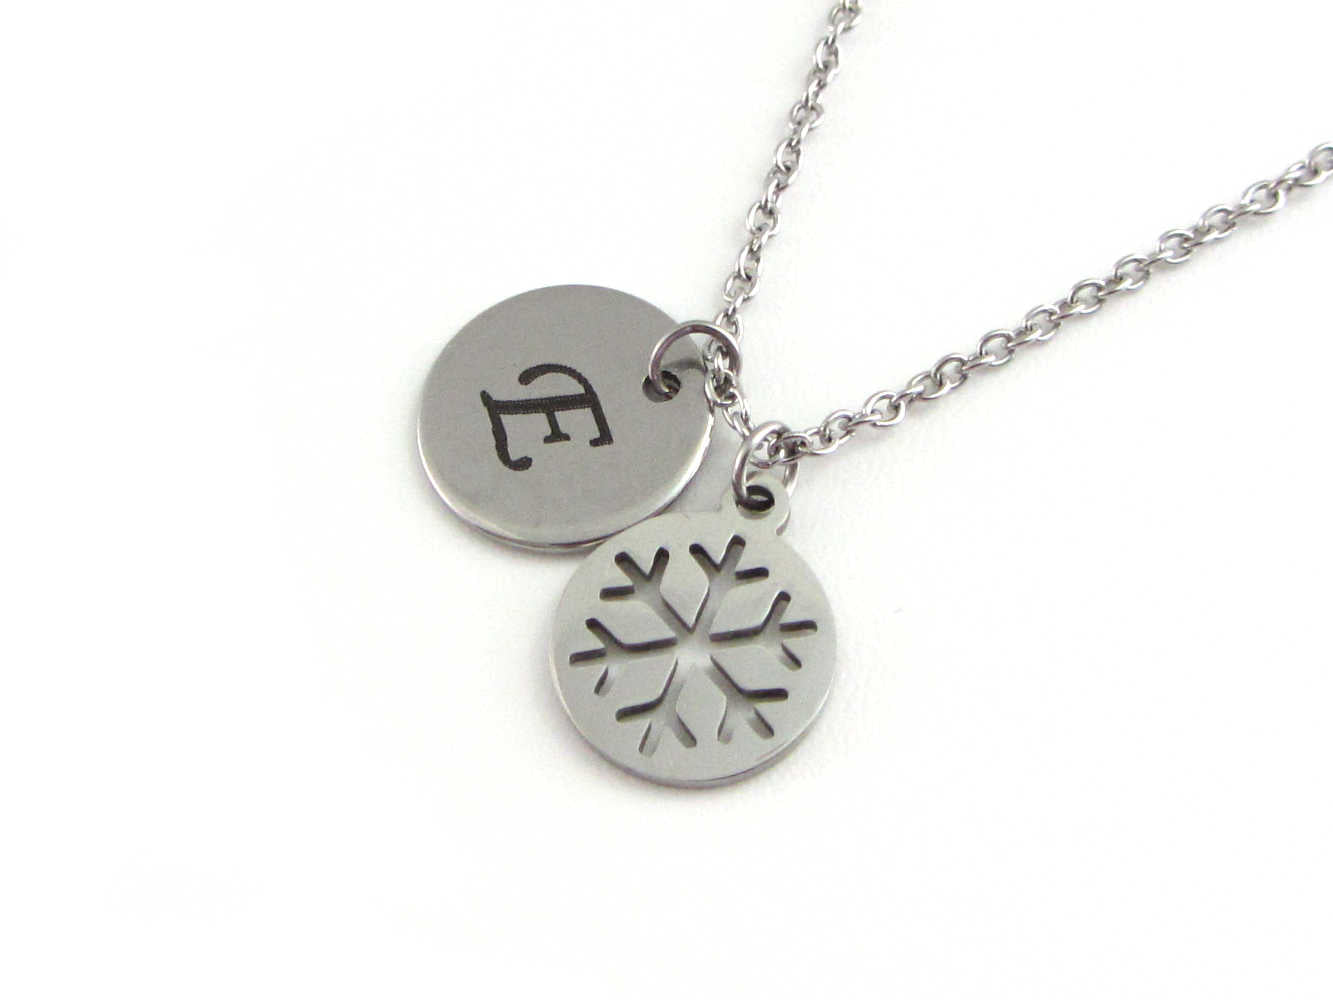 laser engraved capital initial letter disc charm and snowflake charm on a stainless steel chain